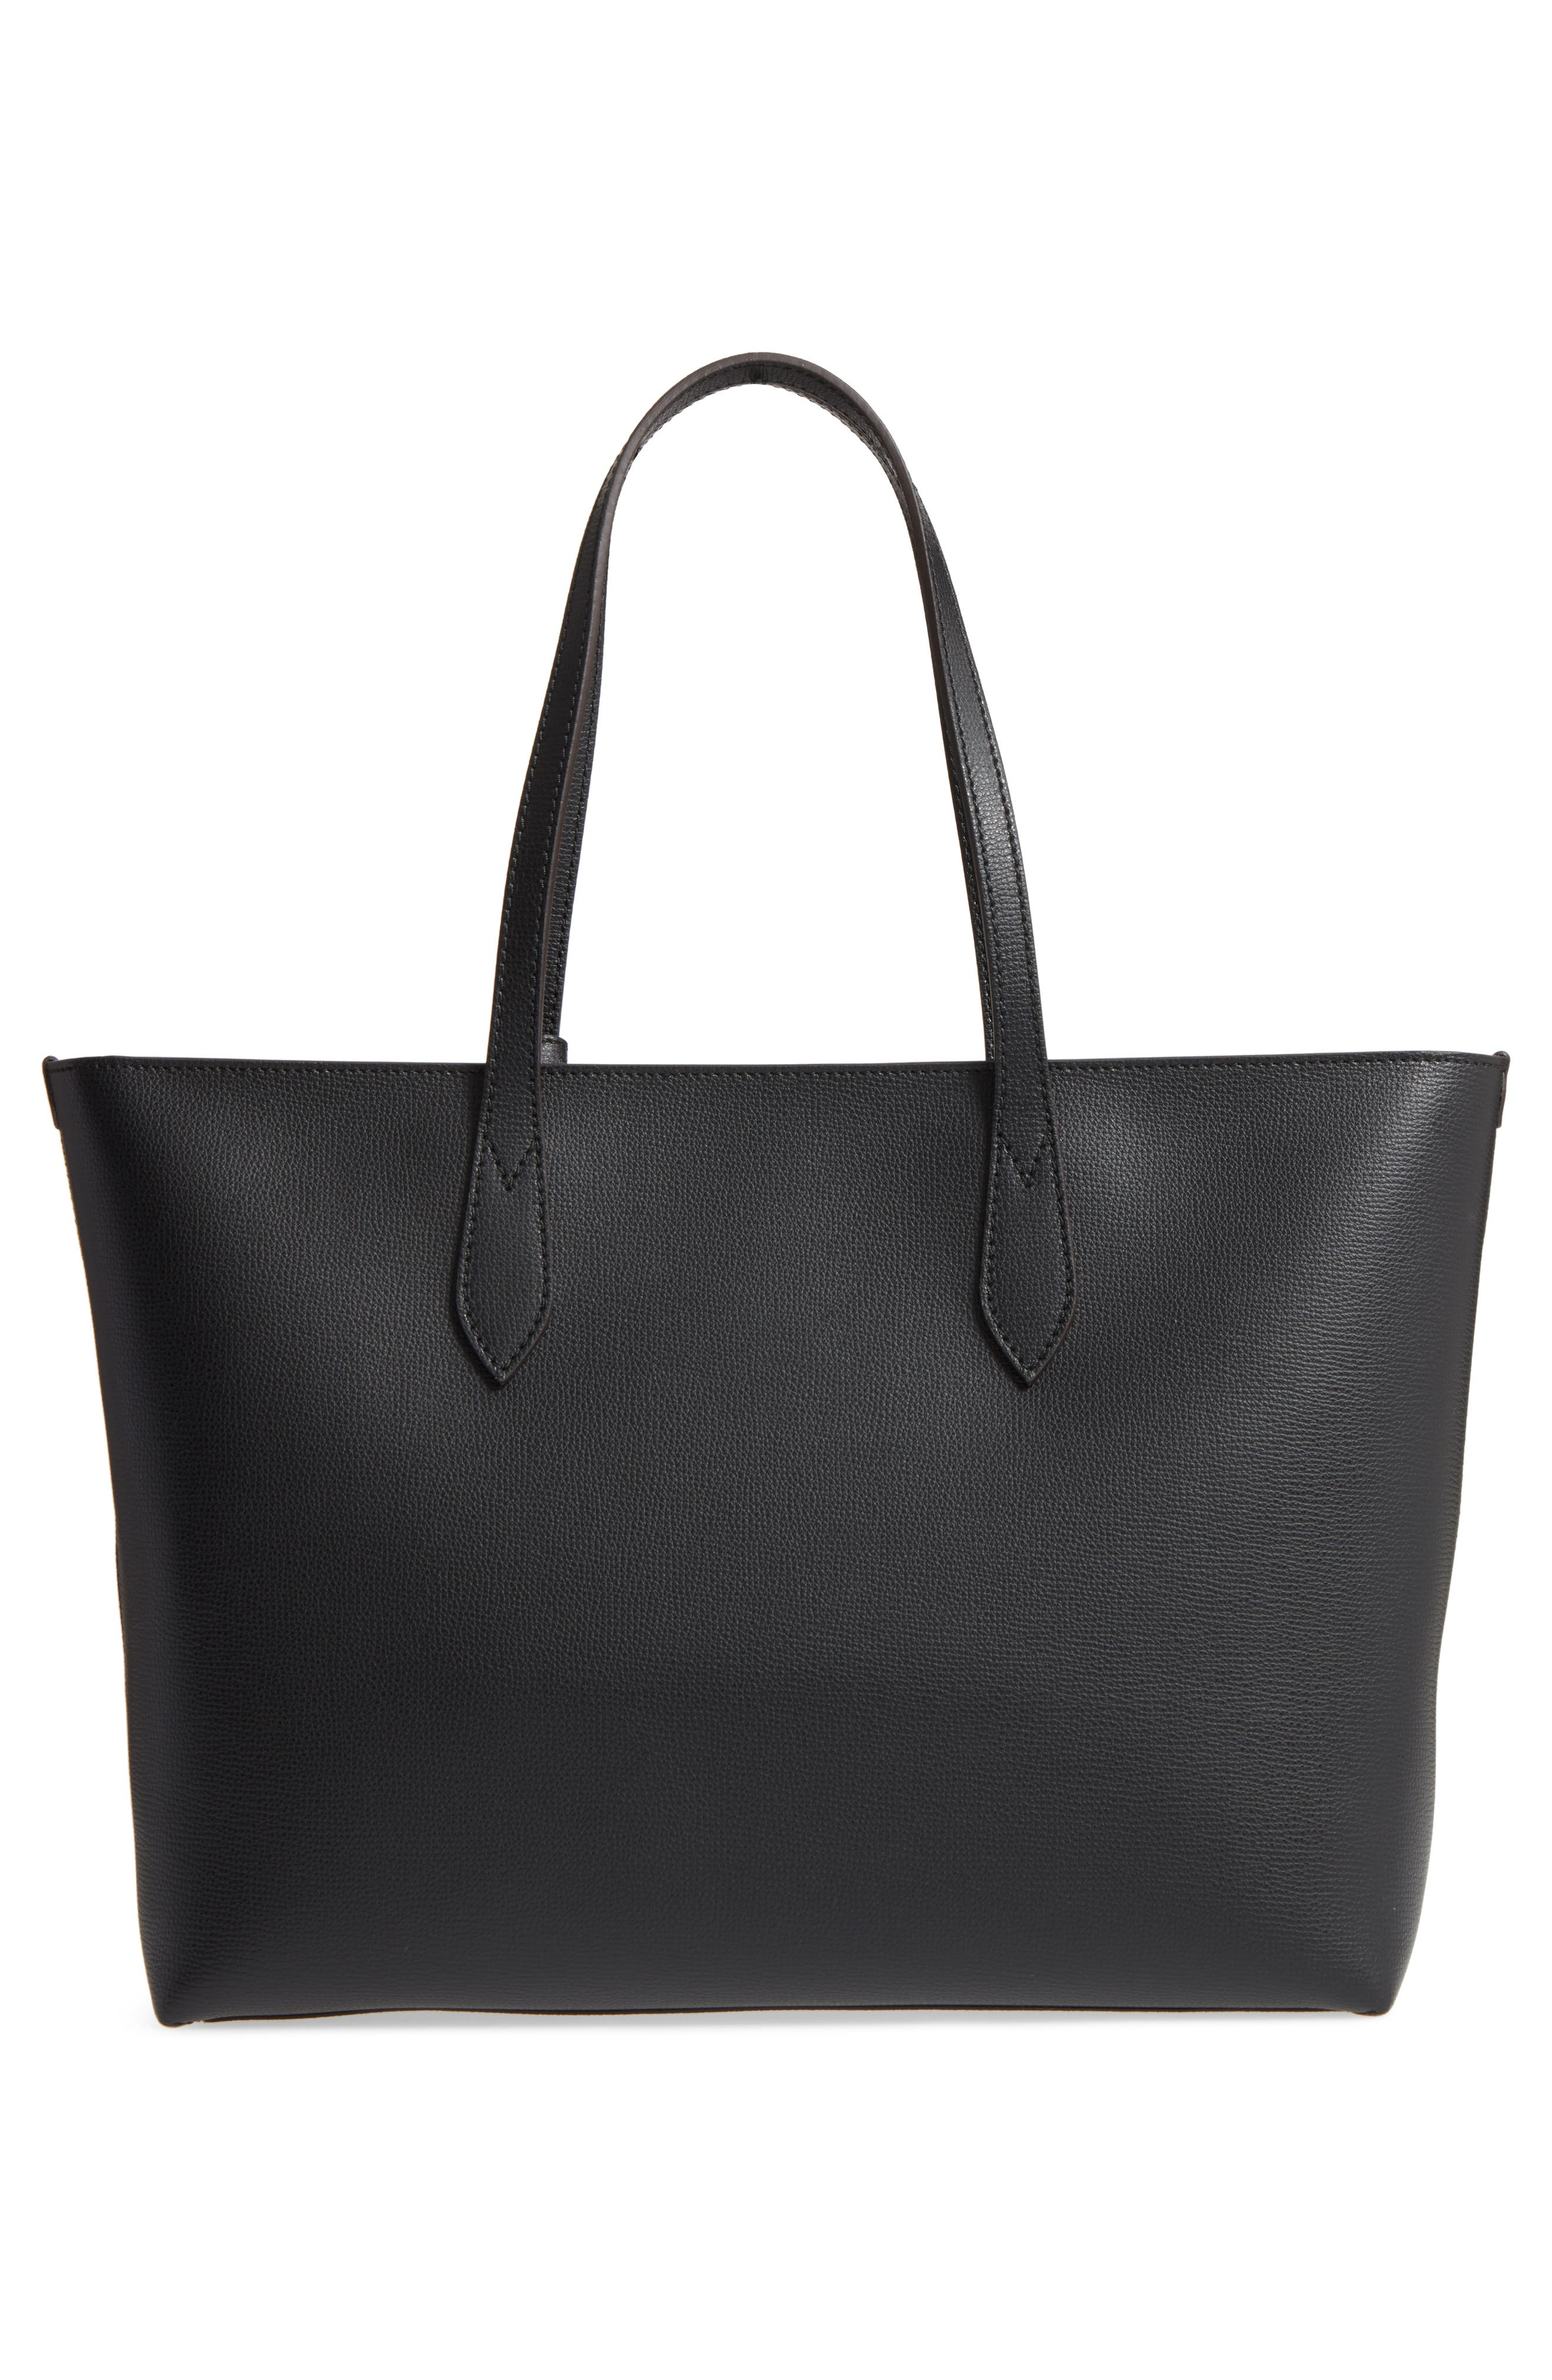 Calfskin Leather Tote,                             Alternate thumbnail 2, color,                             Black